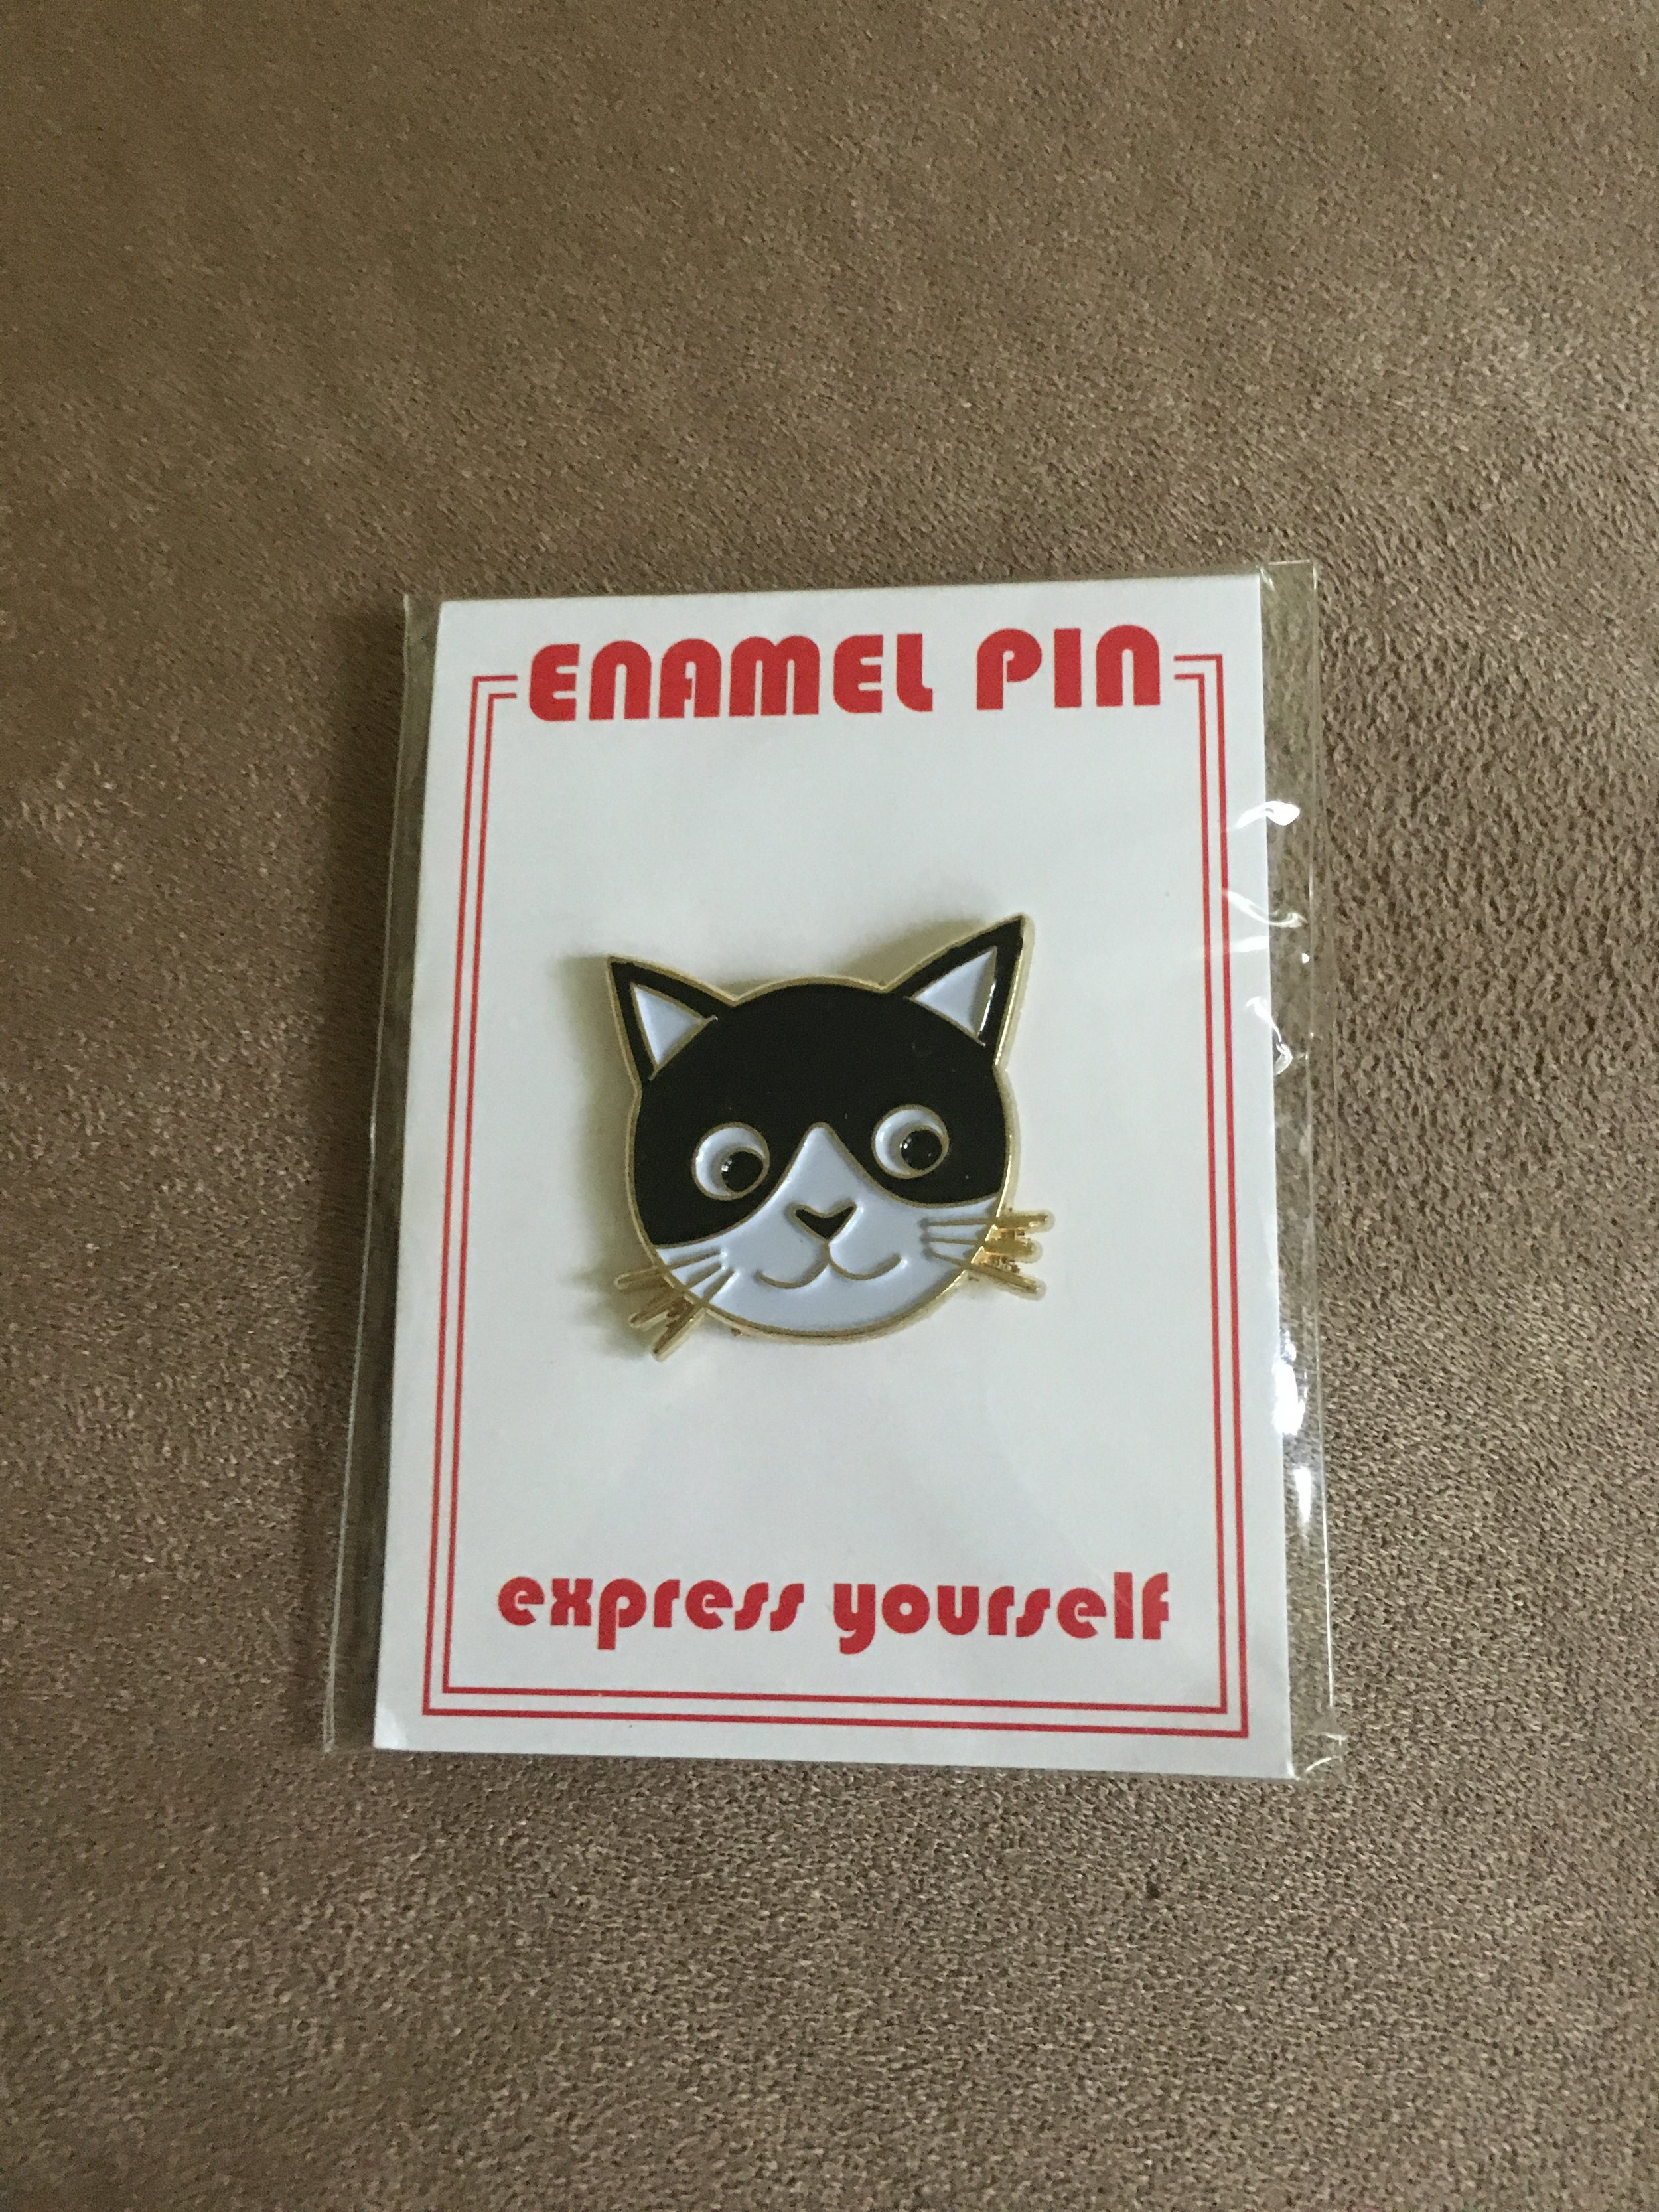 I need to figure out how to wear these fancy pins like all the cool kids!